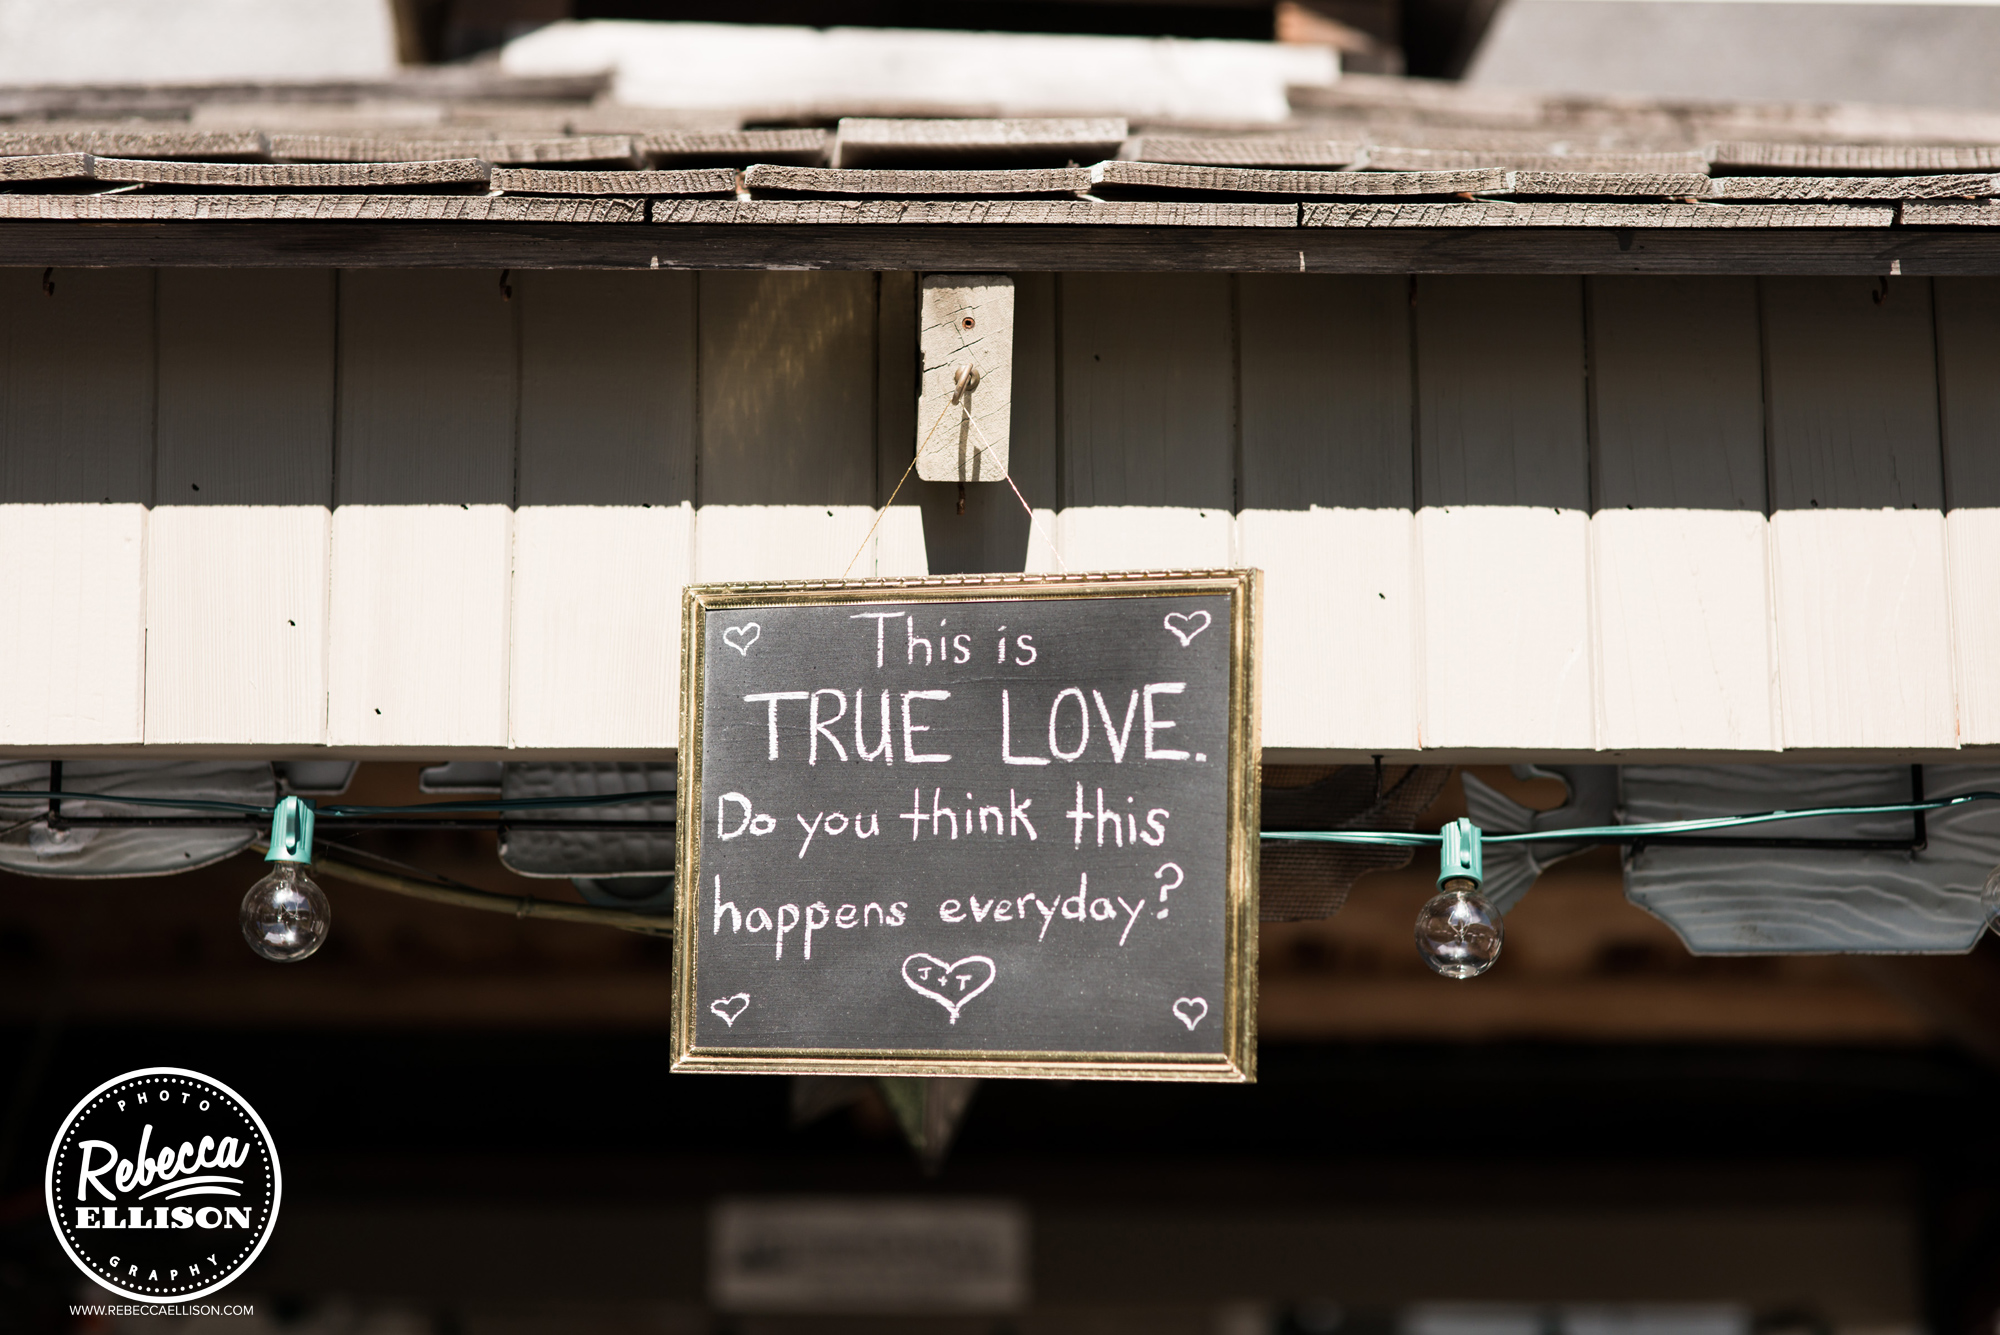 chalkboard decor details at backyard beach house wedding photographed by Seattle wedding photographer Rebecca Ellison